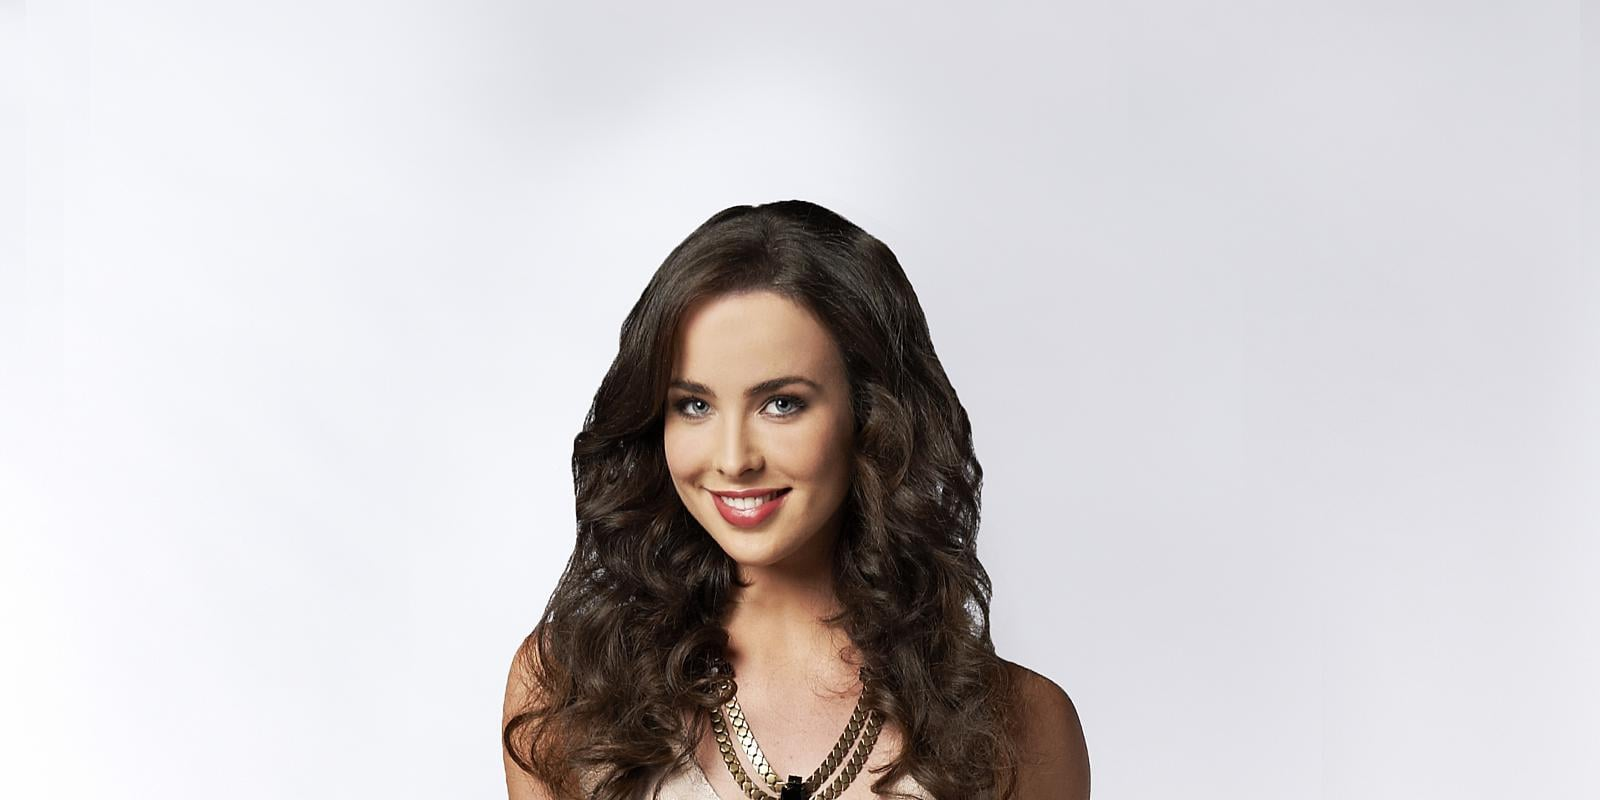 Iphone wallpapers hd - 17 Ashleigh Brewer Wallpapers Hd Download